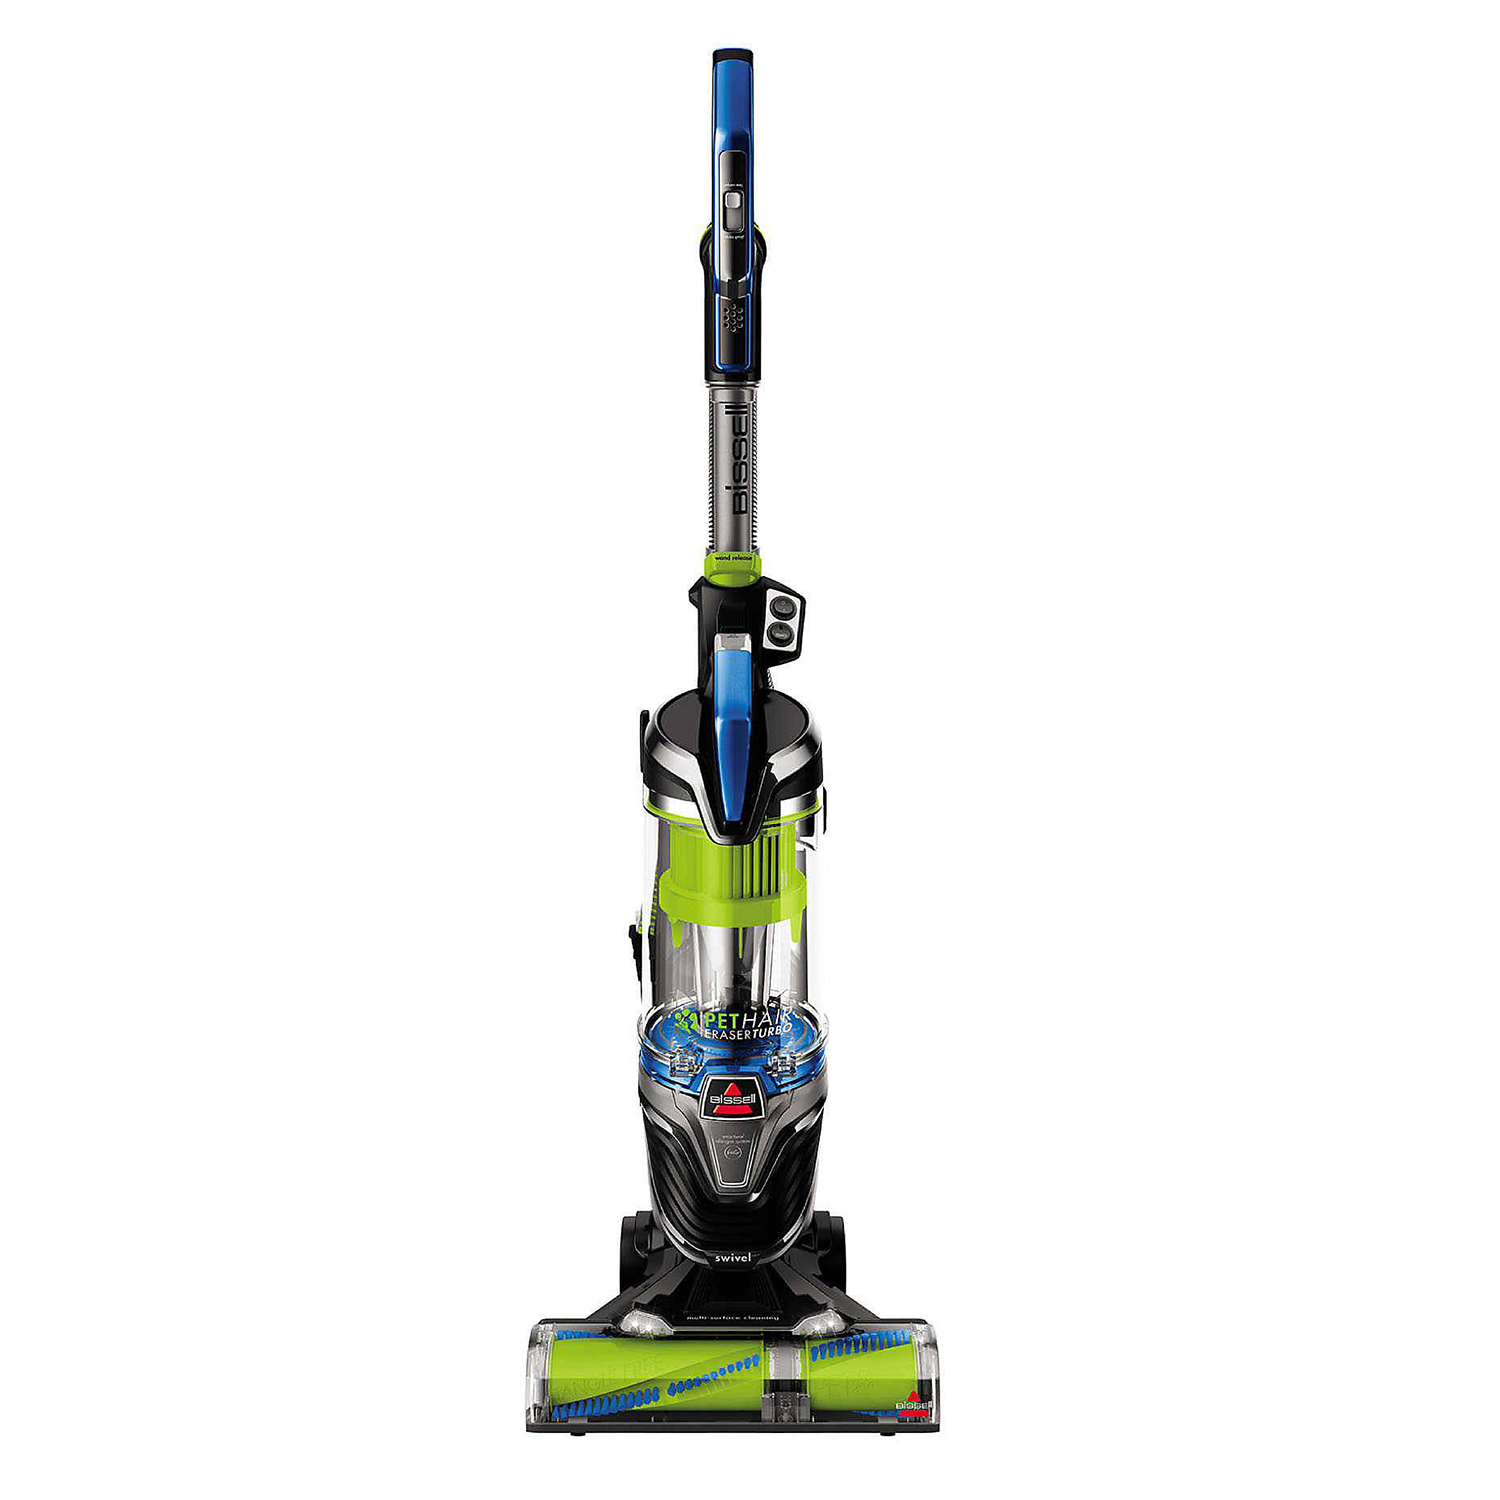 BISSELL Pet Hair Eraser Turbo Pro with Bonus 3-in-1 Stair Tool